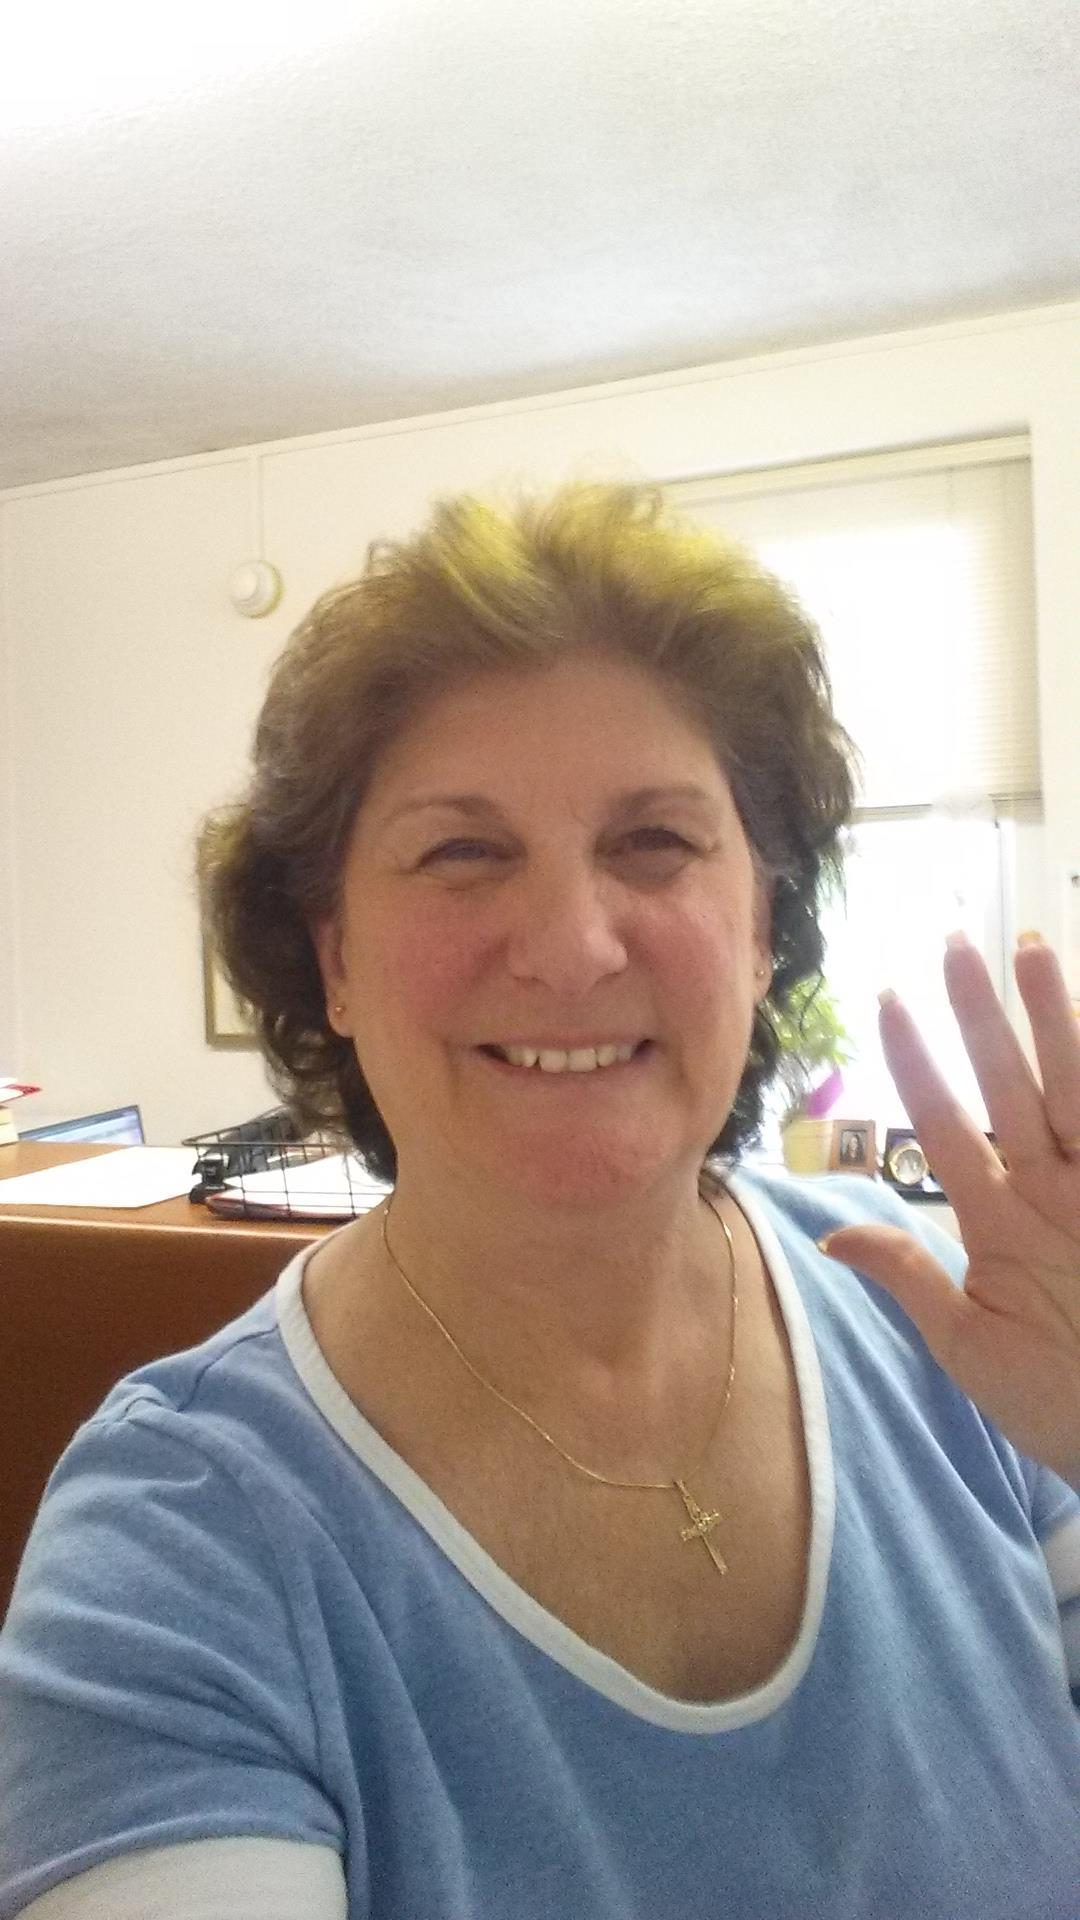 Gail Strahler Schaffer '69S sends greetings from the Moravian Academy Business Office!